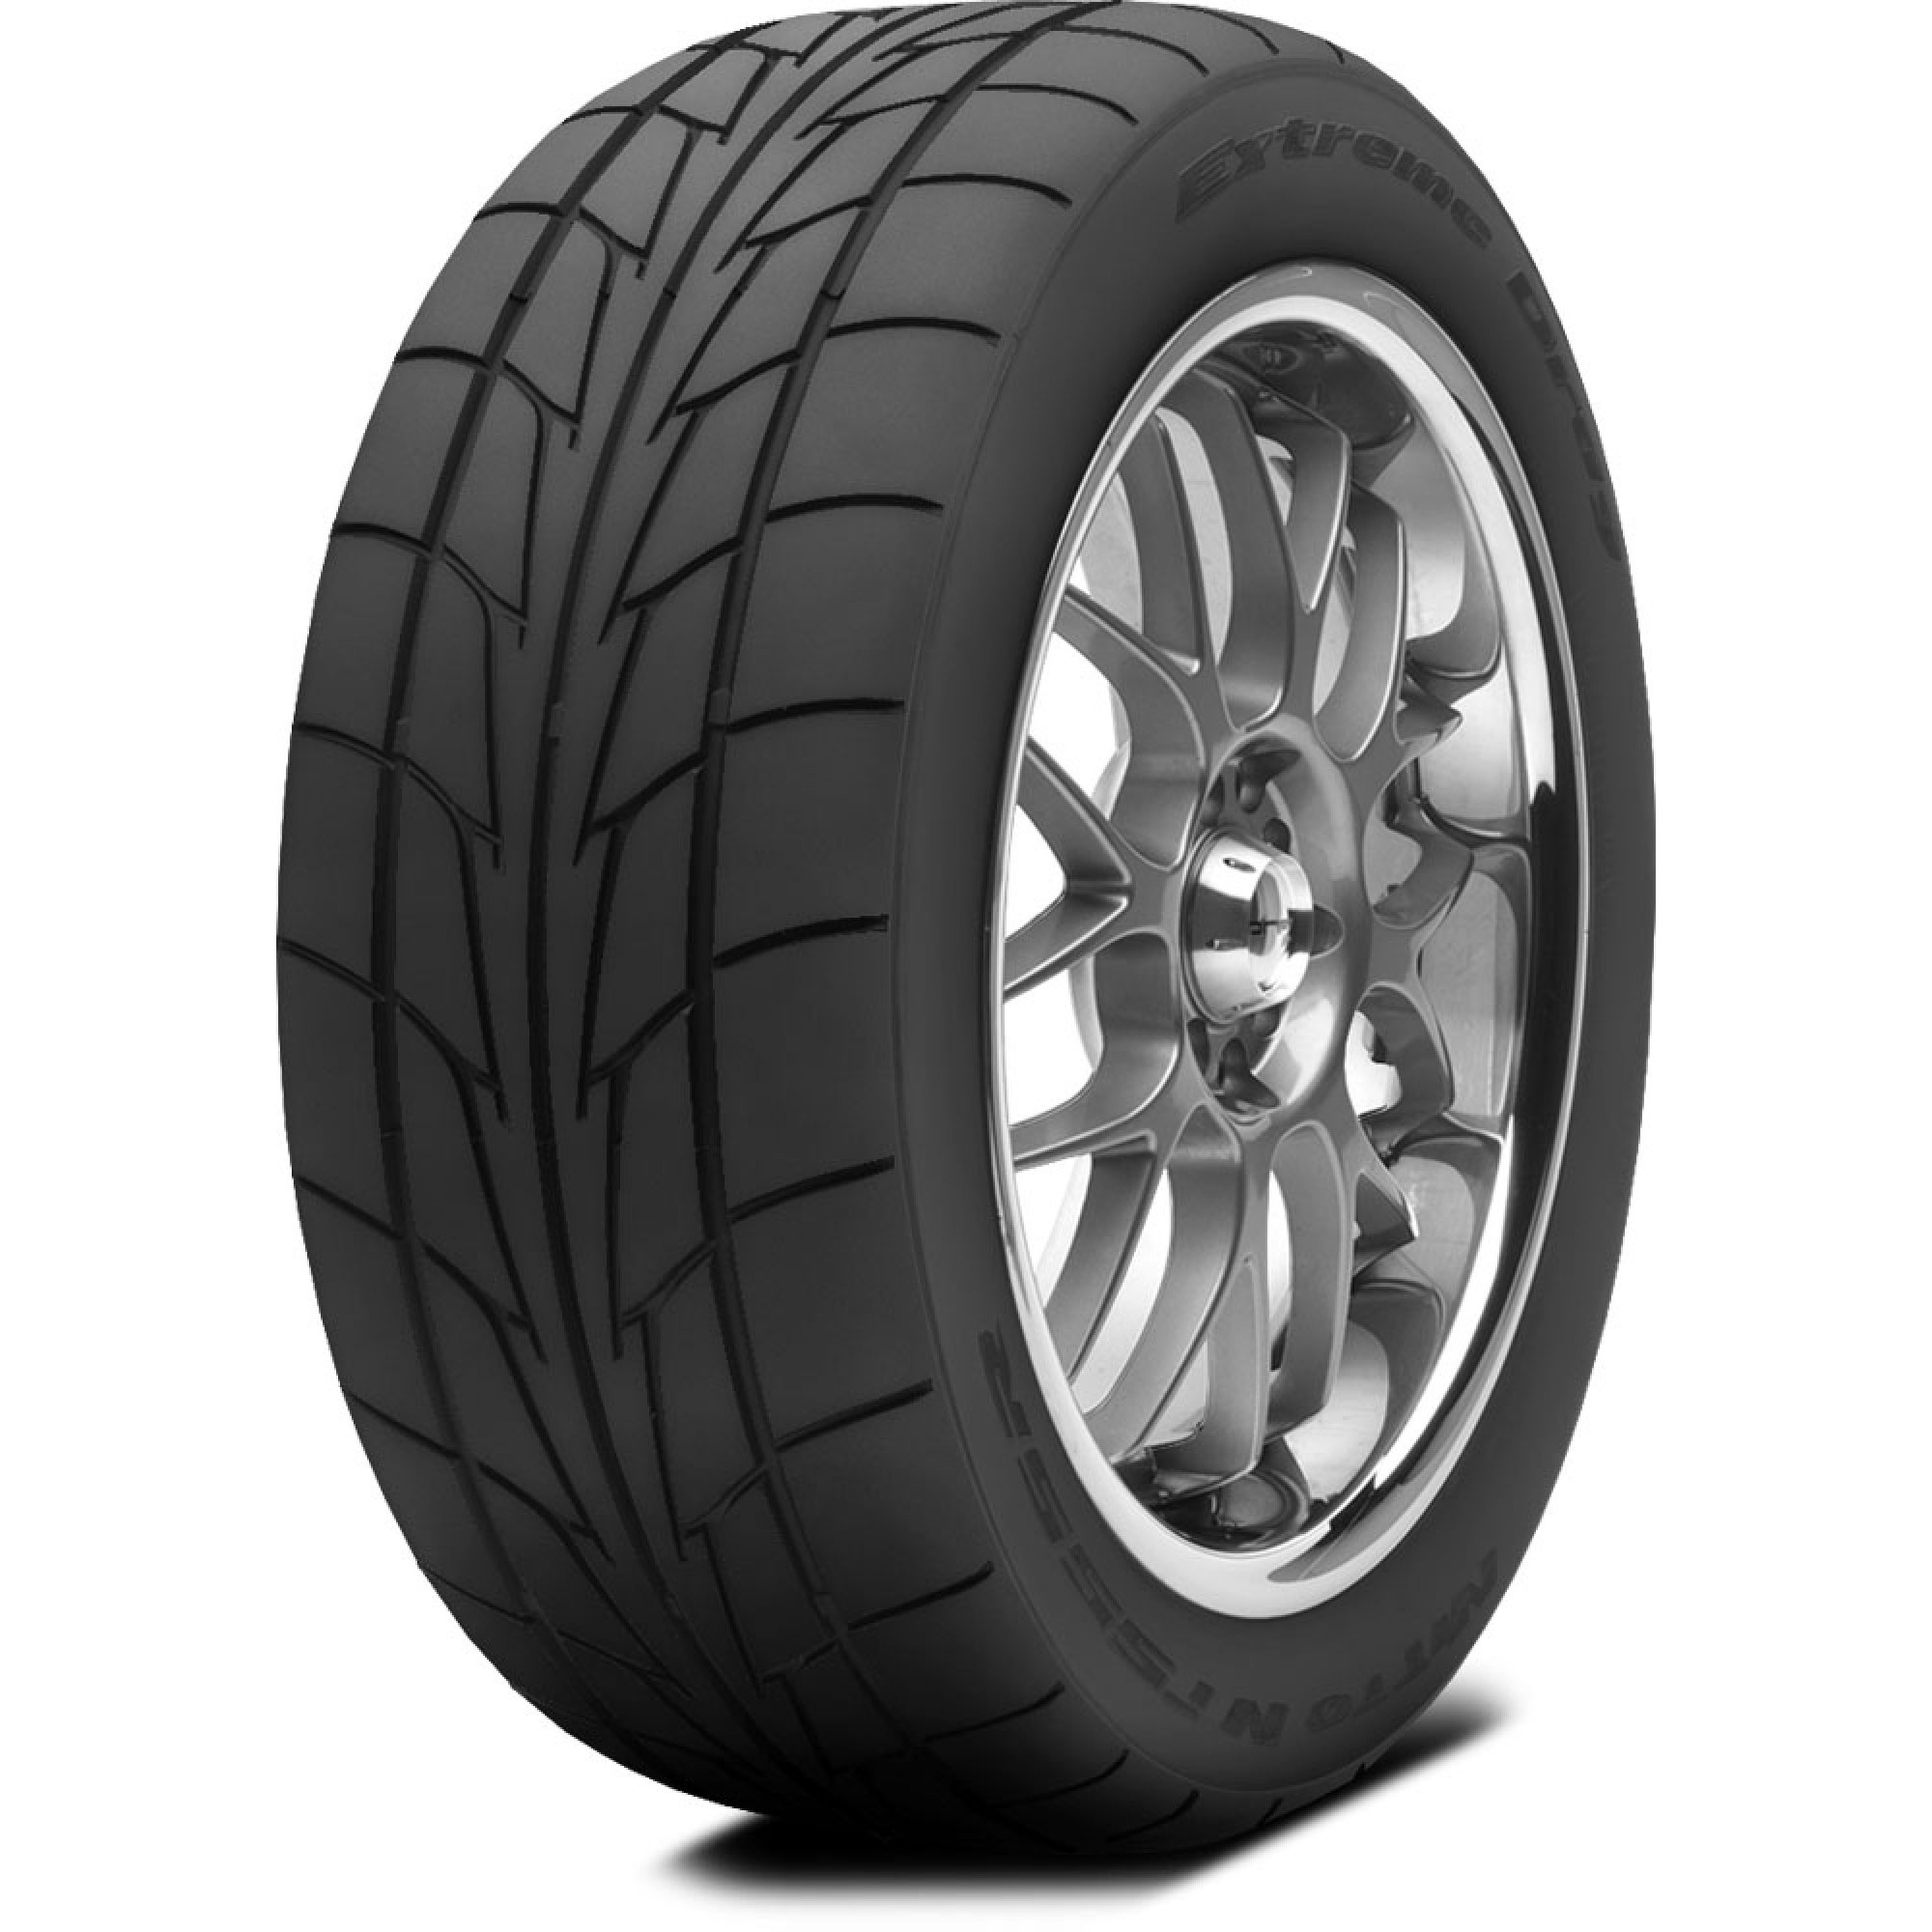 Nitto Nt555r Drag Radial 285 35r18 Set Of 2 Fiebruz